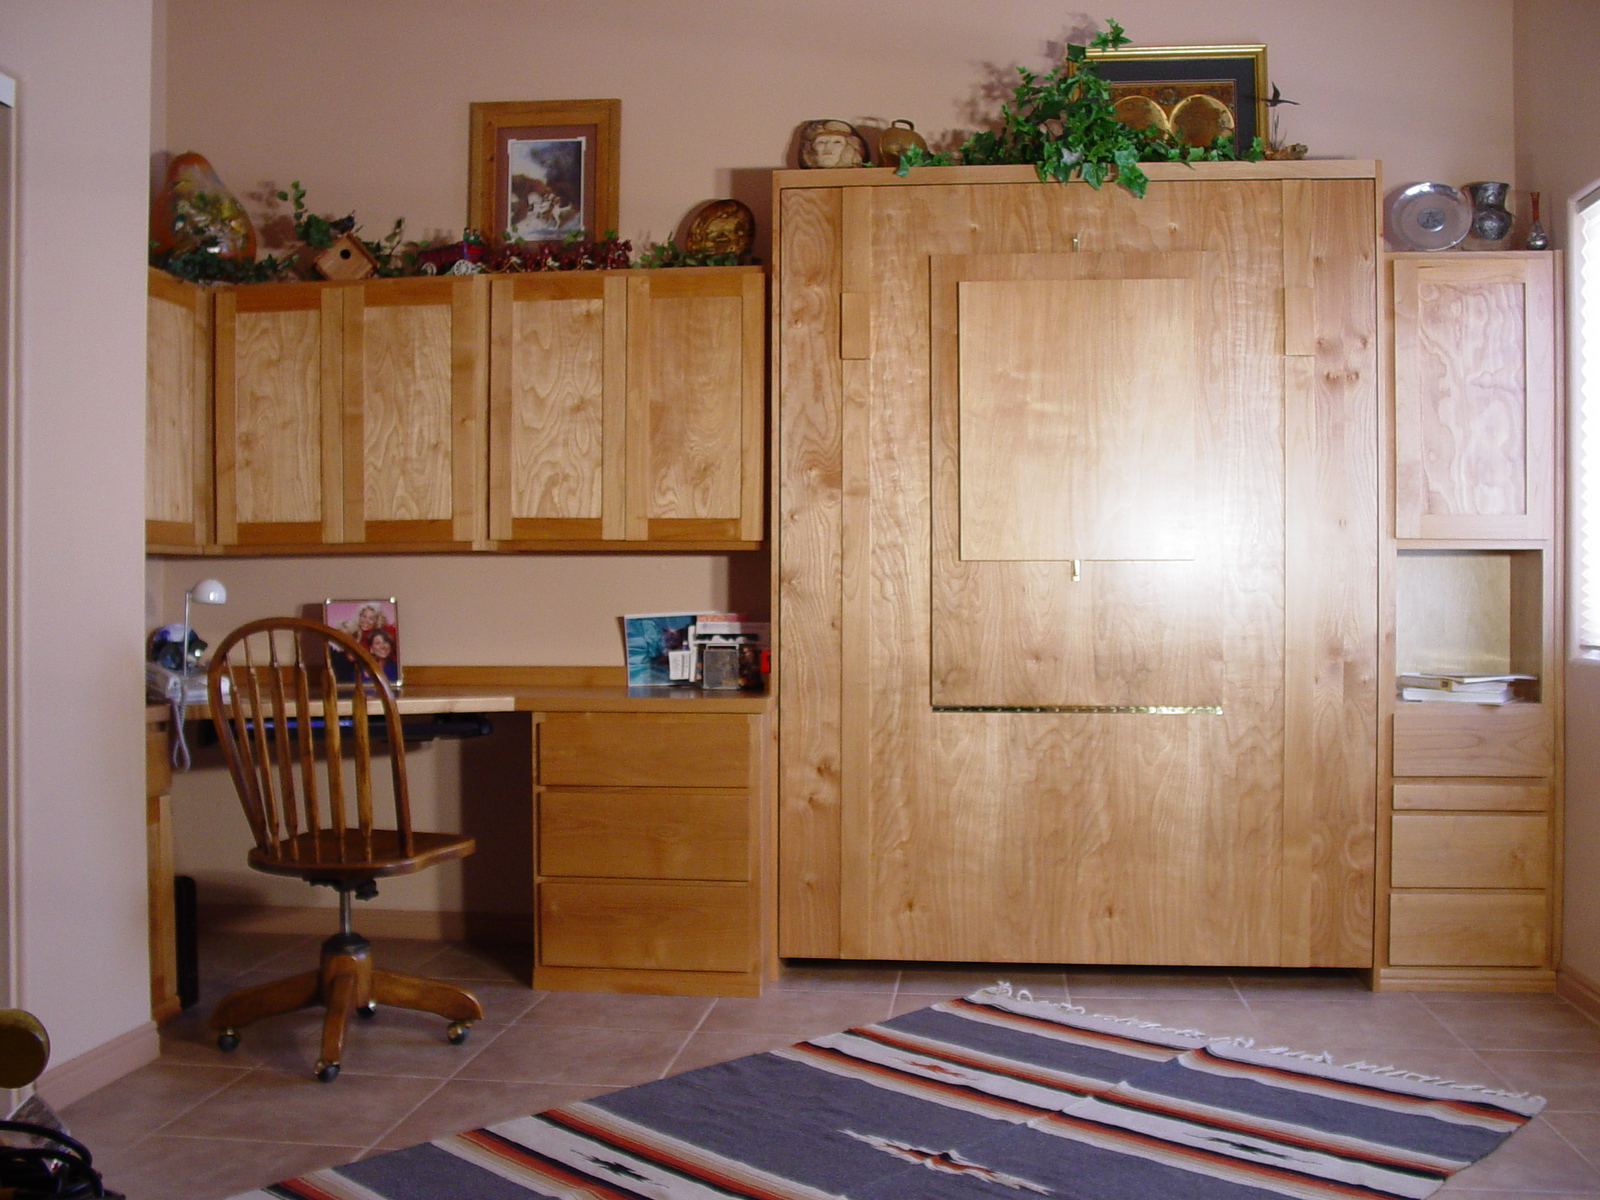 Chalet style Wallbed Home Office